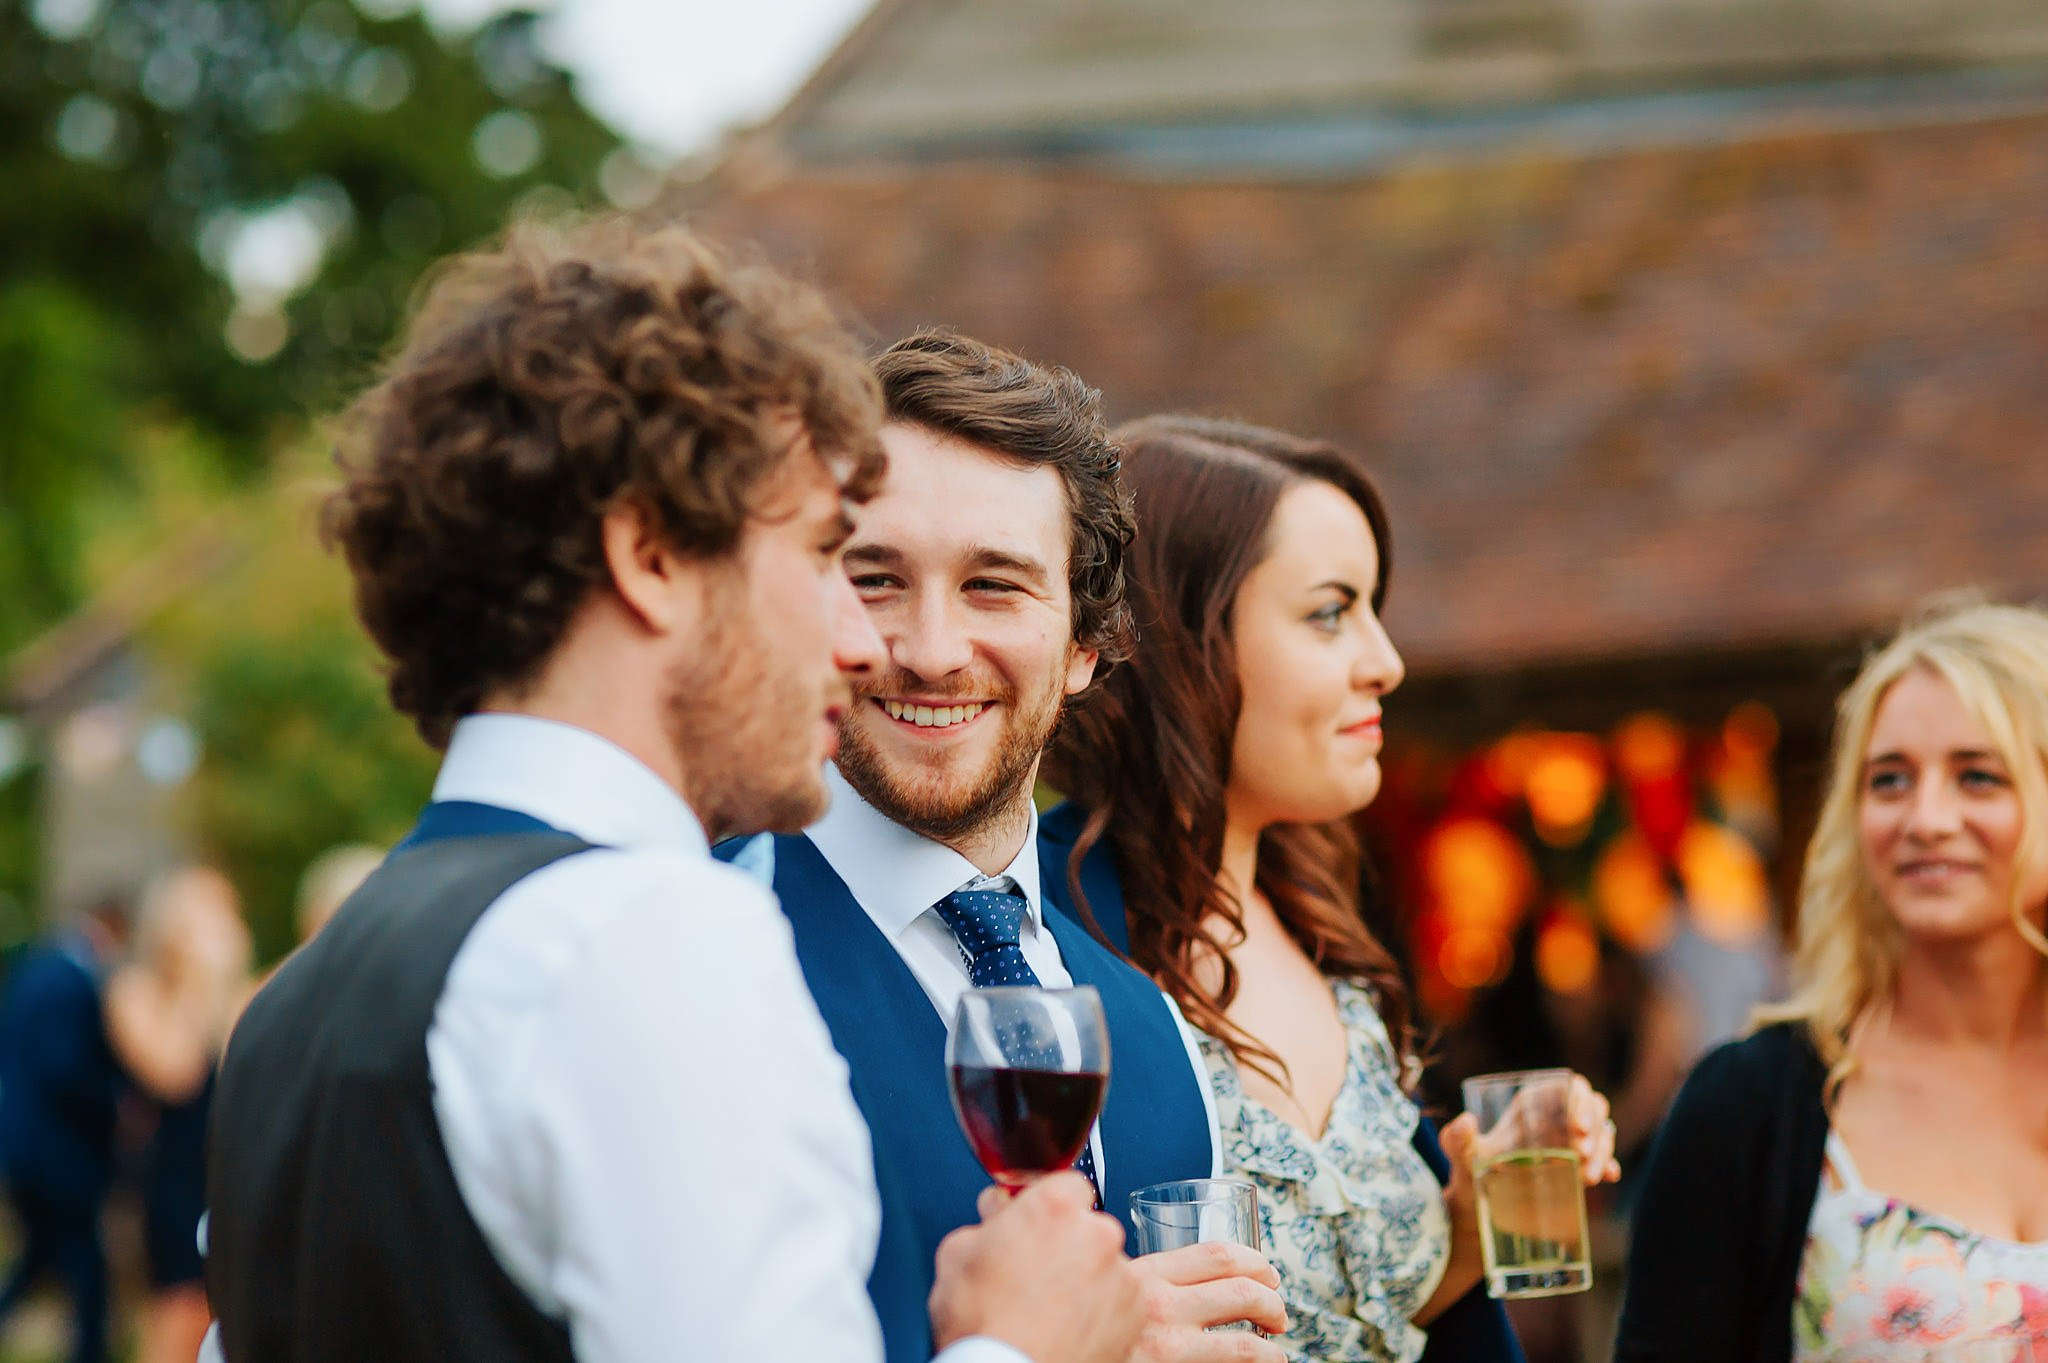 Wedding photography at Hellens Manor in Herefordshire, West Midlands | Shelley + Ian 143